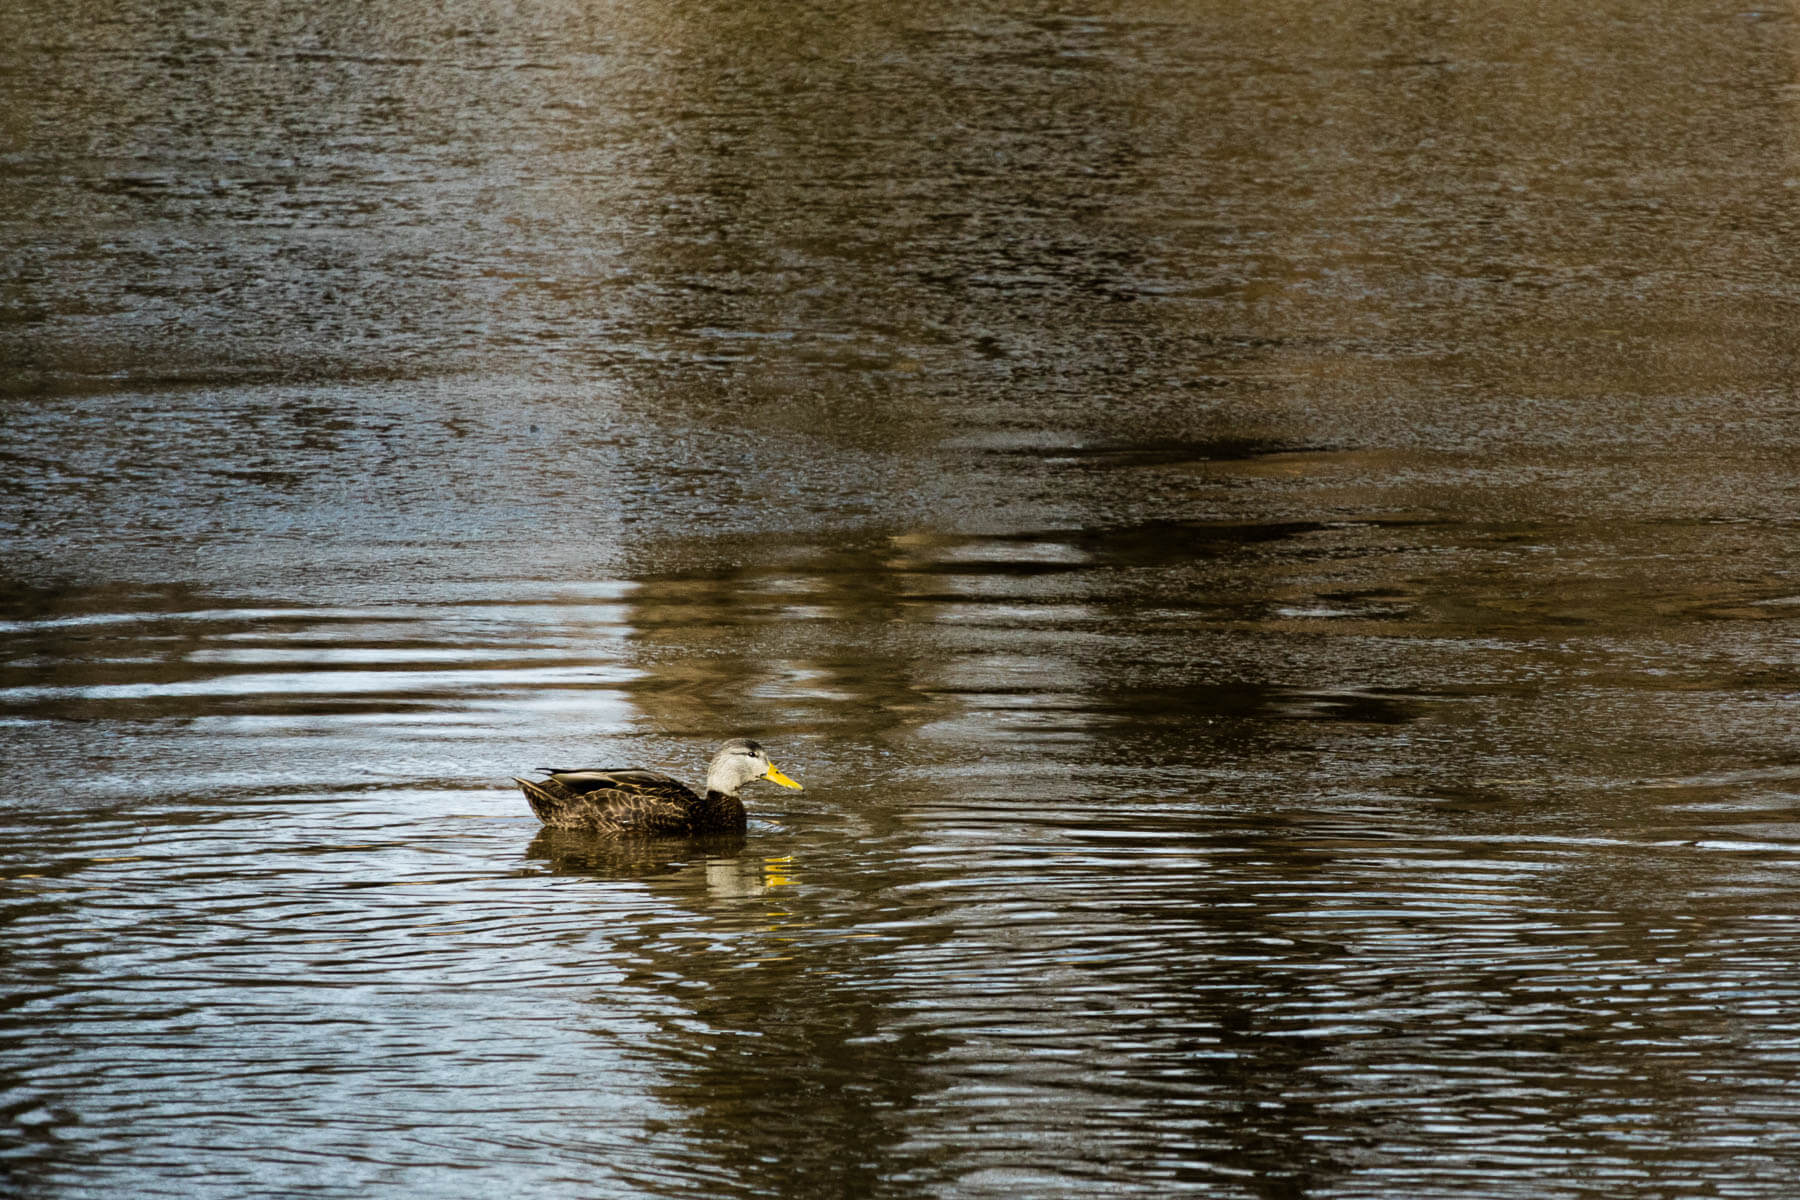 American black duck floating on water